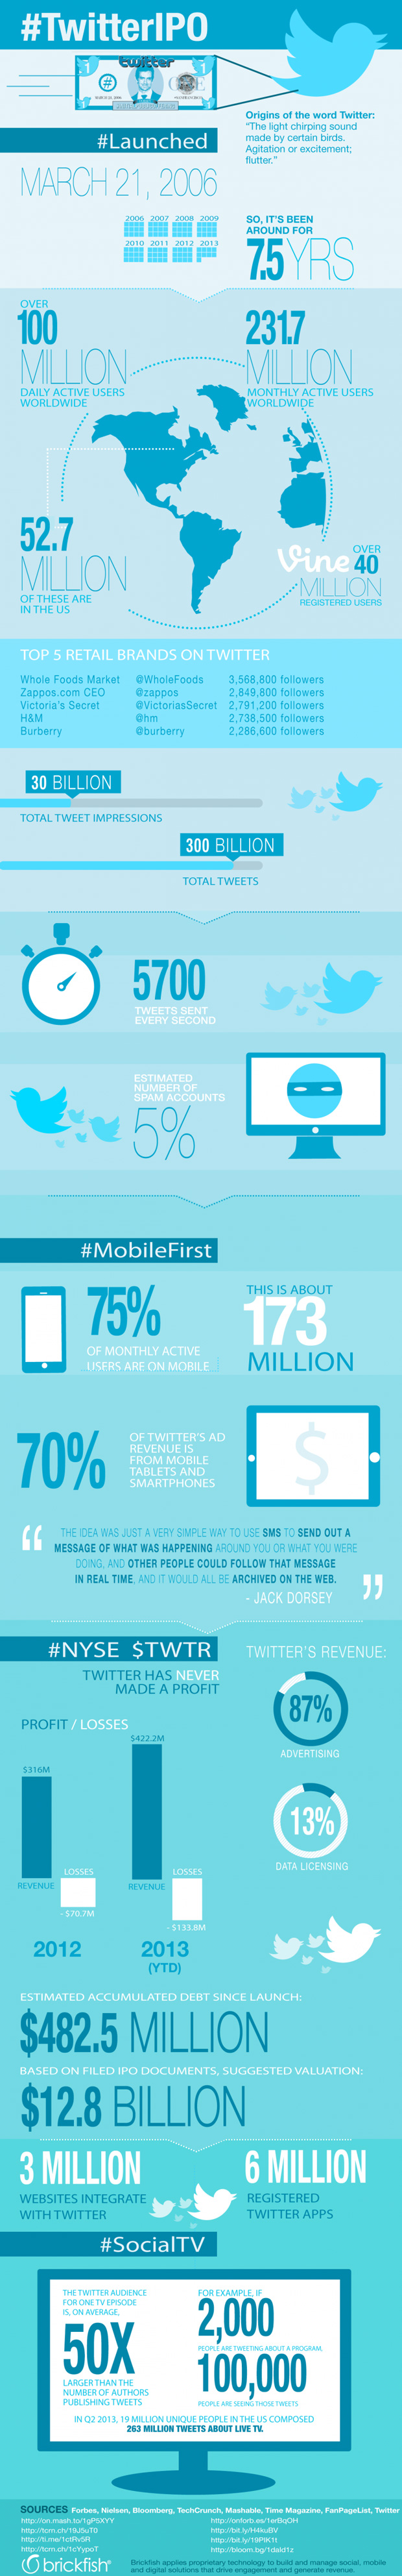 Twitter-stats-infographic